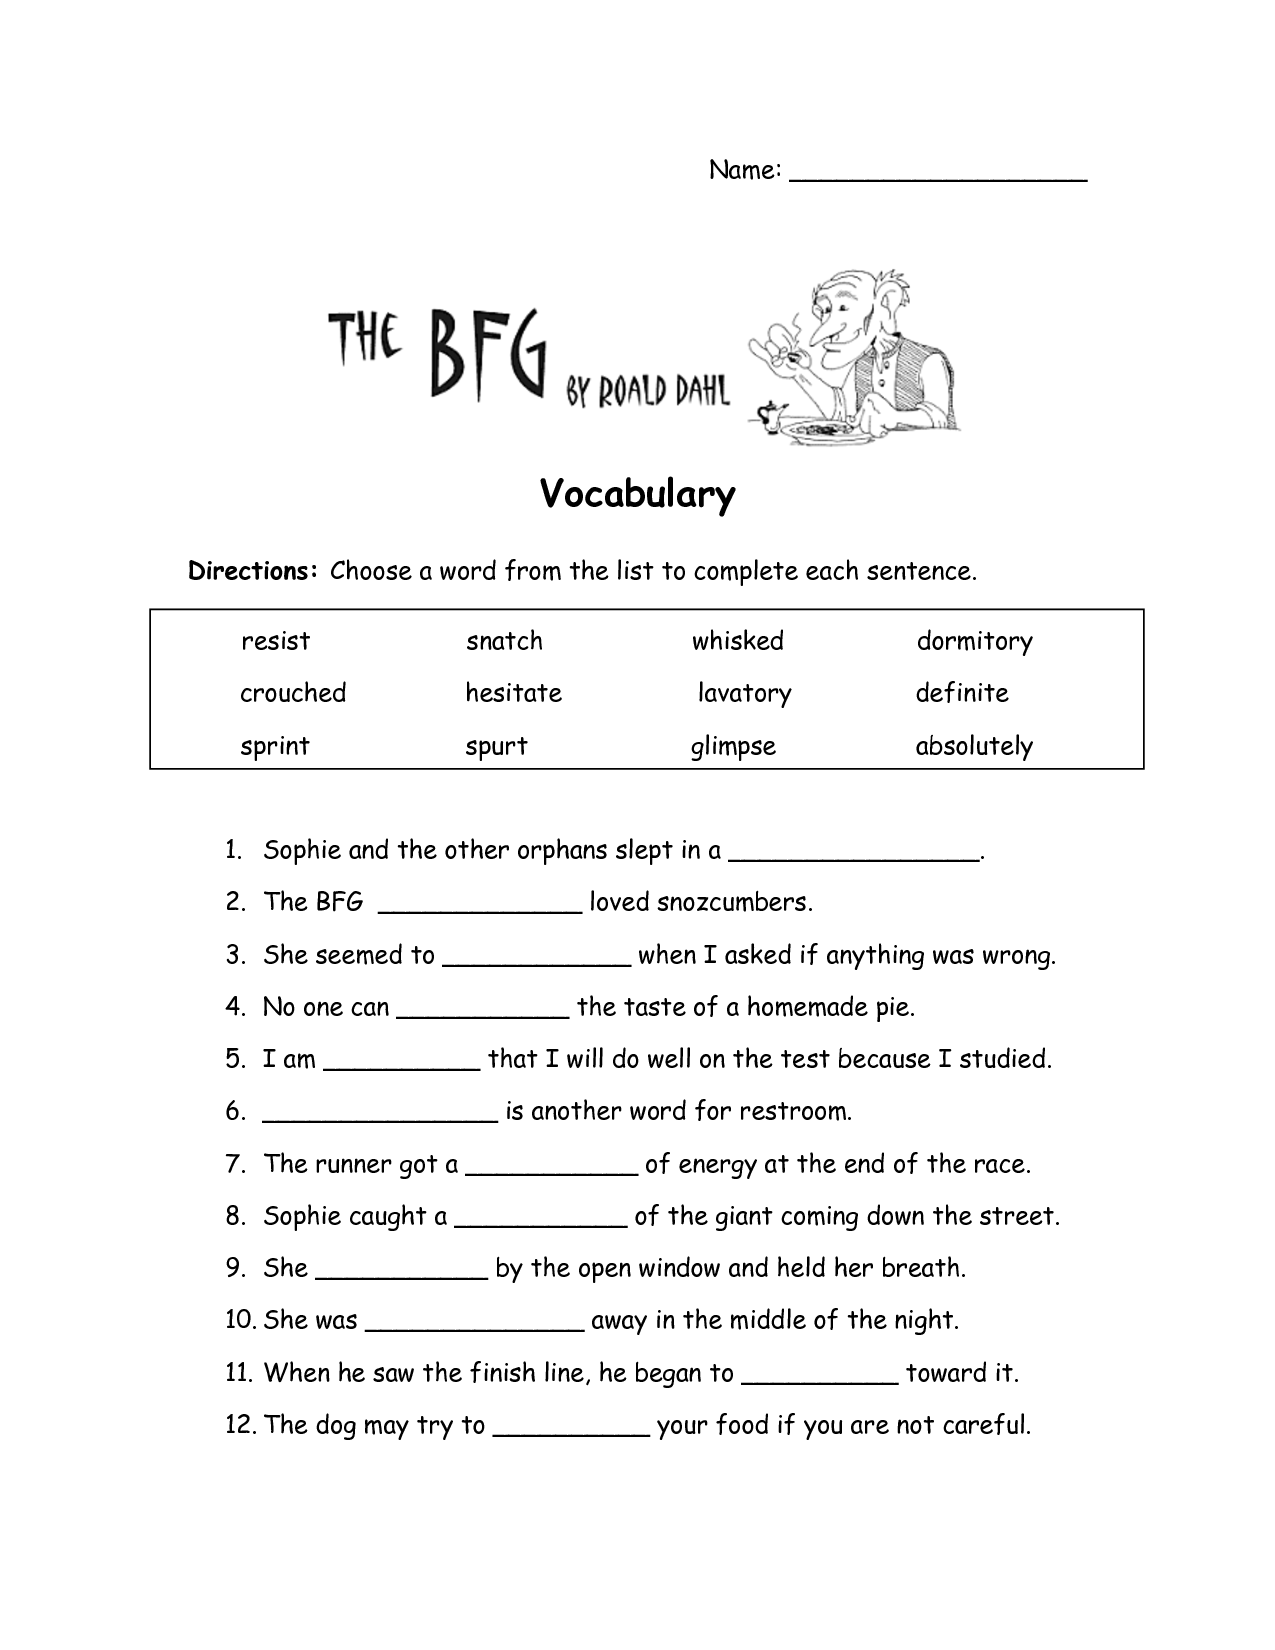 5 Best Images Of Printable Vocabulary Worksheets